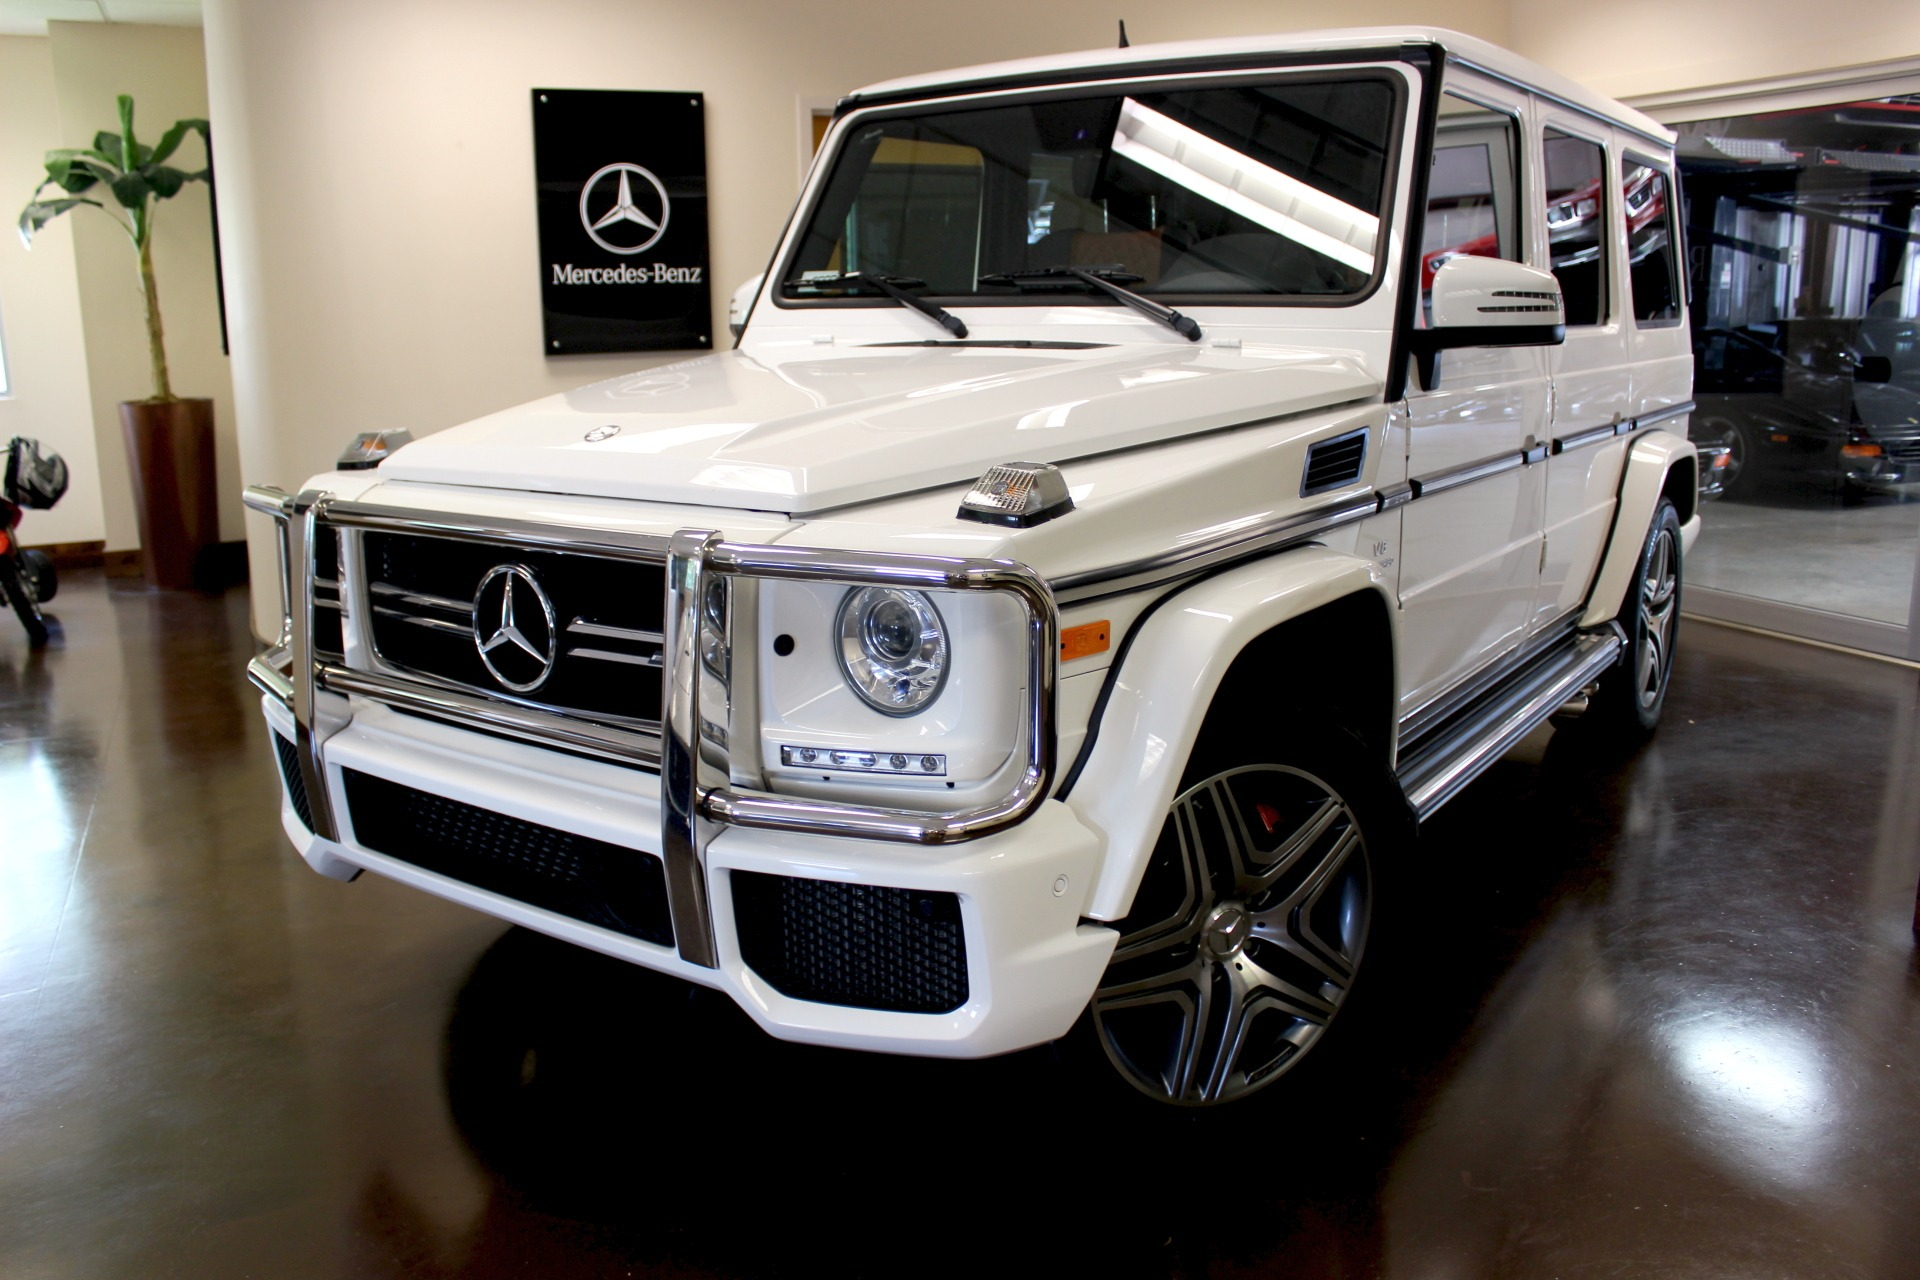 used 2015 mercedes benz g class stock p3692 ultra luxury car from merlin auto group. Black Bedroom Furniture Sets. Home Design Ideas